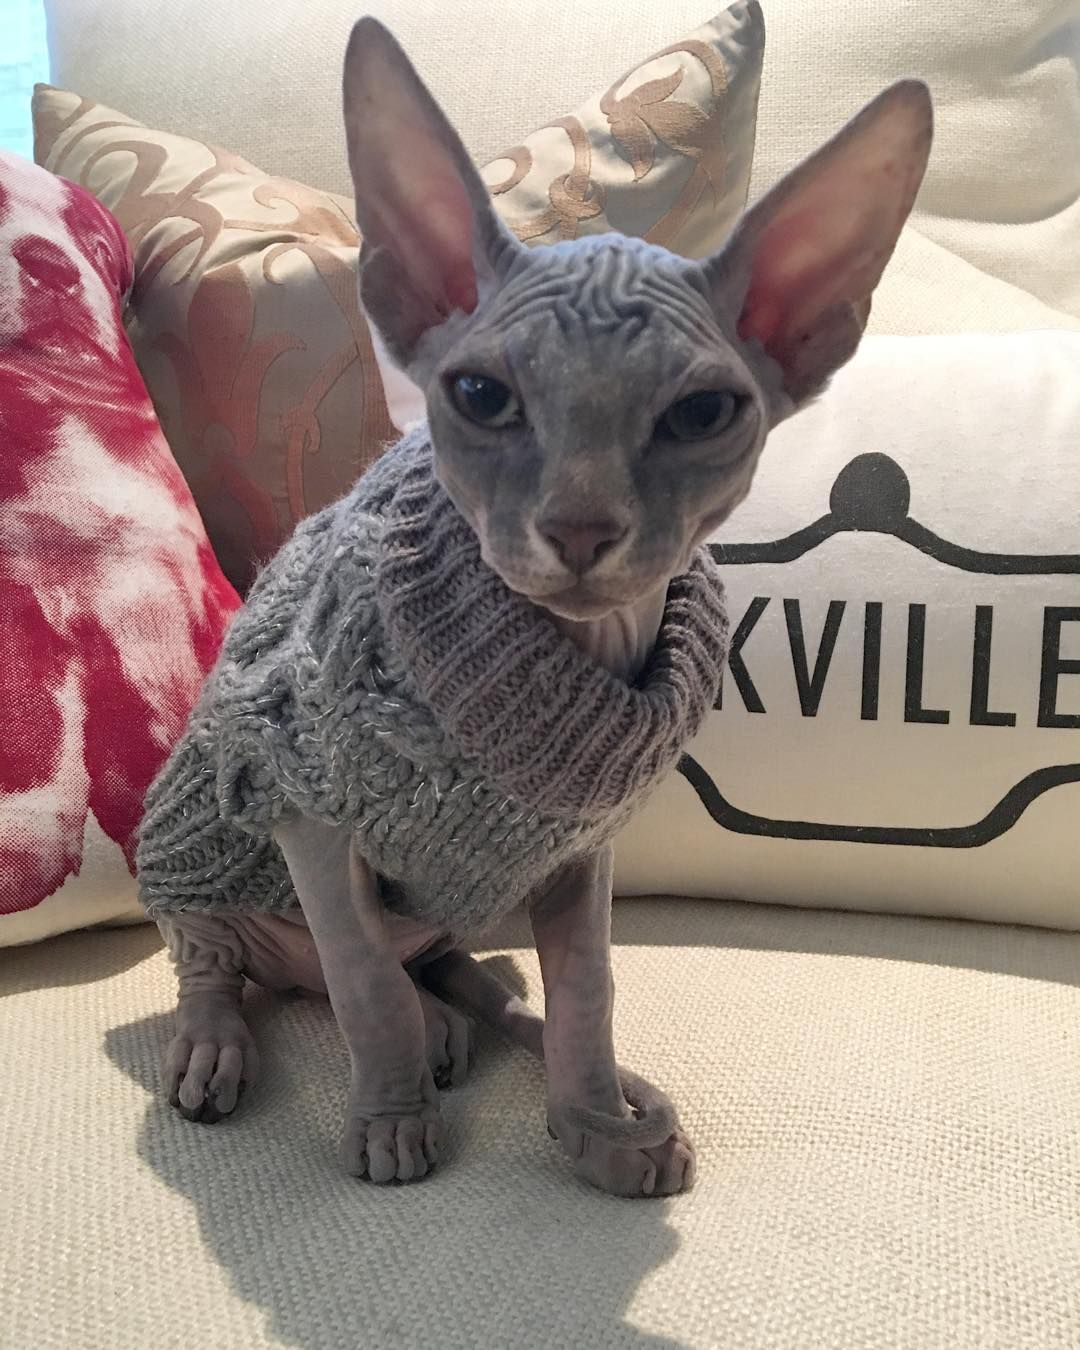 Hypoallergenic Cats For Sale In 2020 Sphynx Kittens For Sale Kitten Adoption Cats For Sale